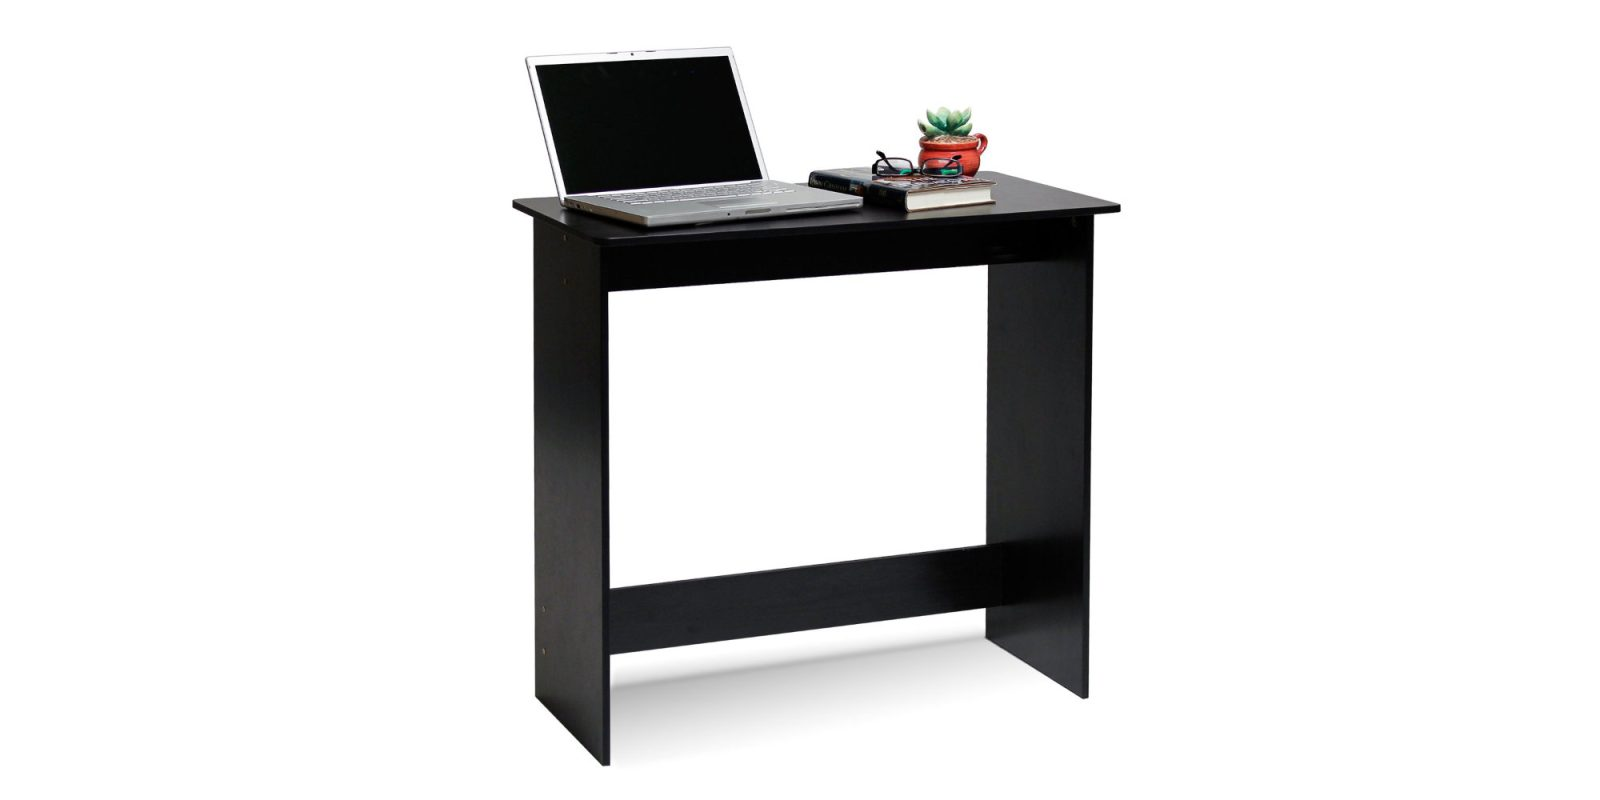 Just $23.50 updates your desk with Furinno's Simplistic Study Table